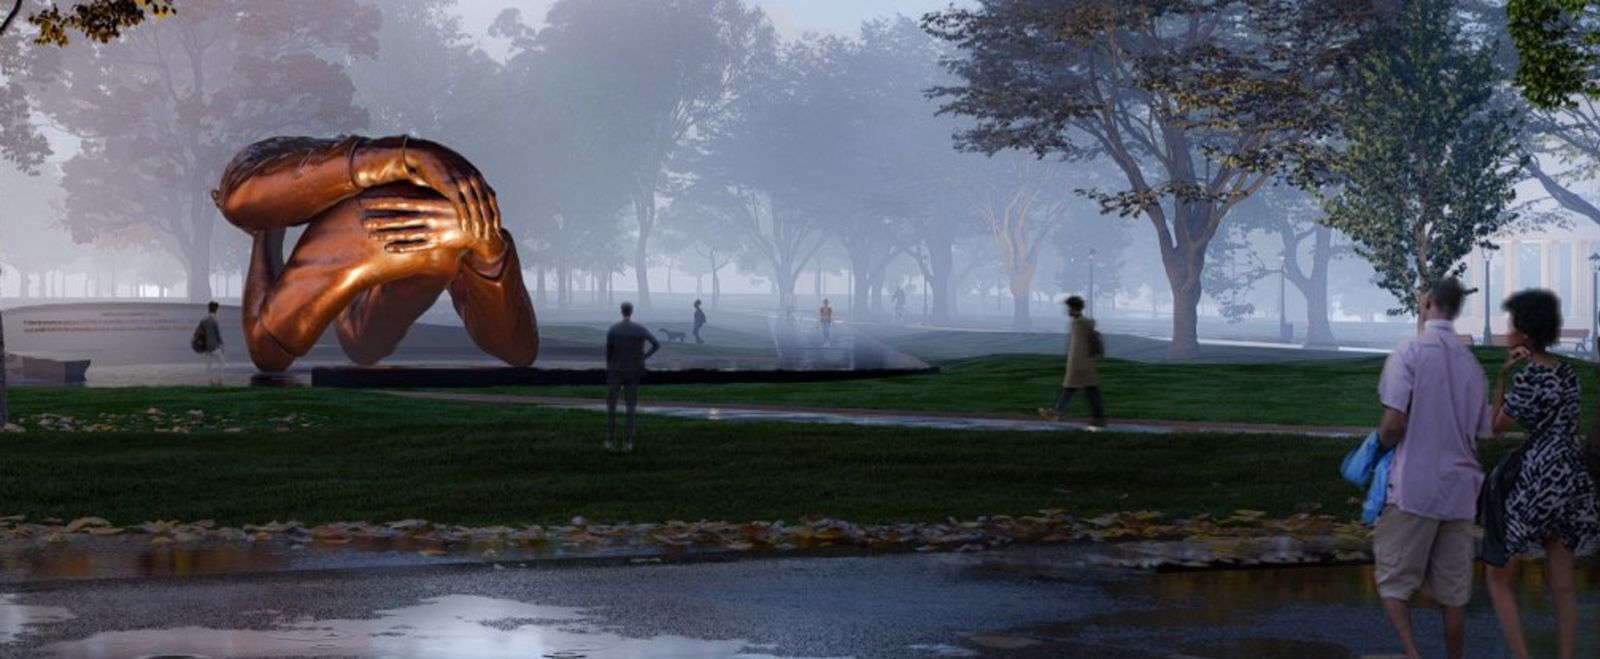 A mockup of The Embrace sculpture in Boston Common.